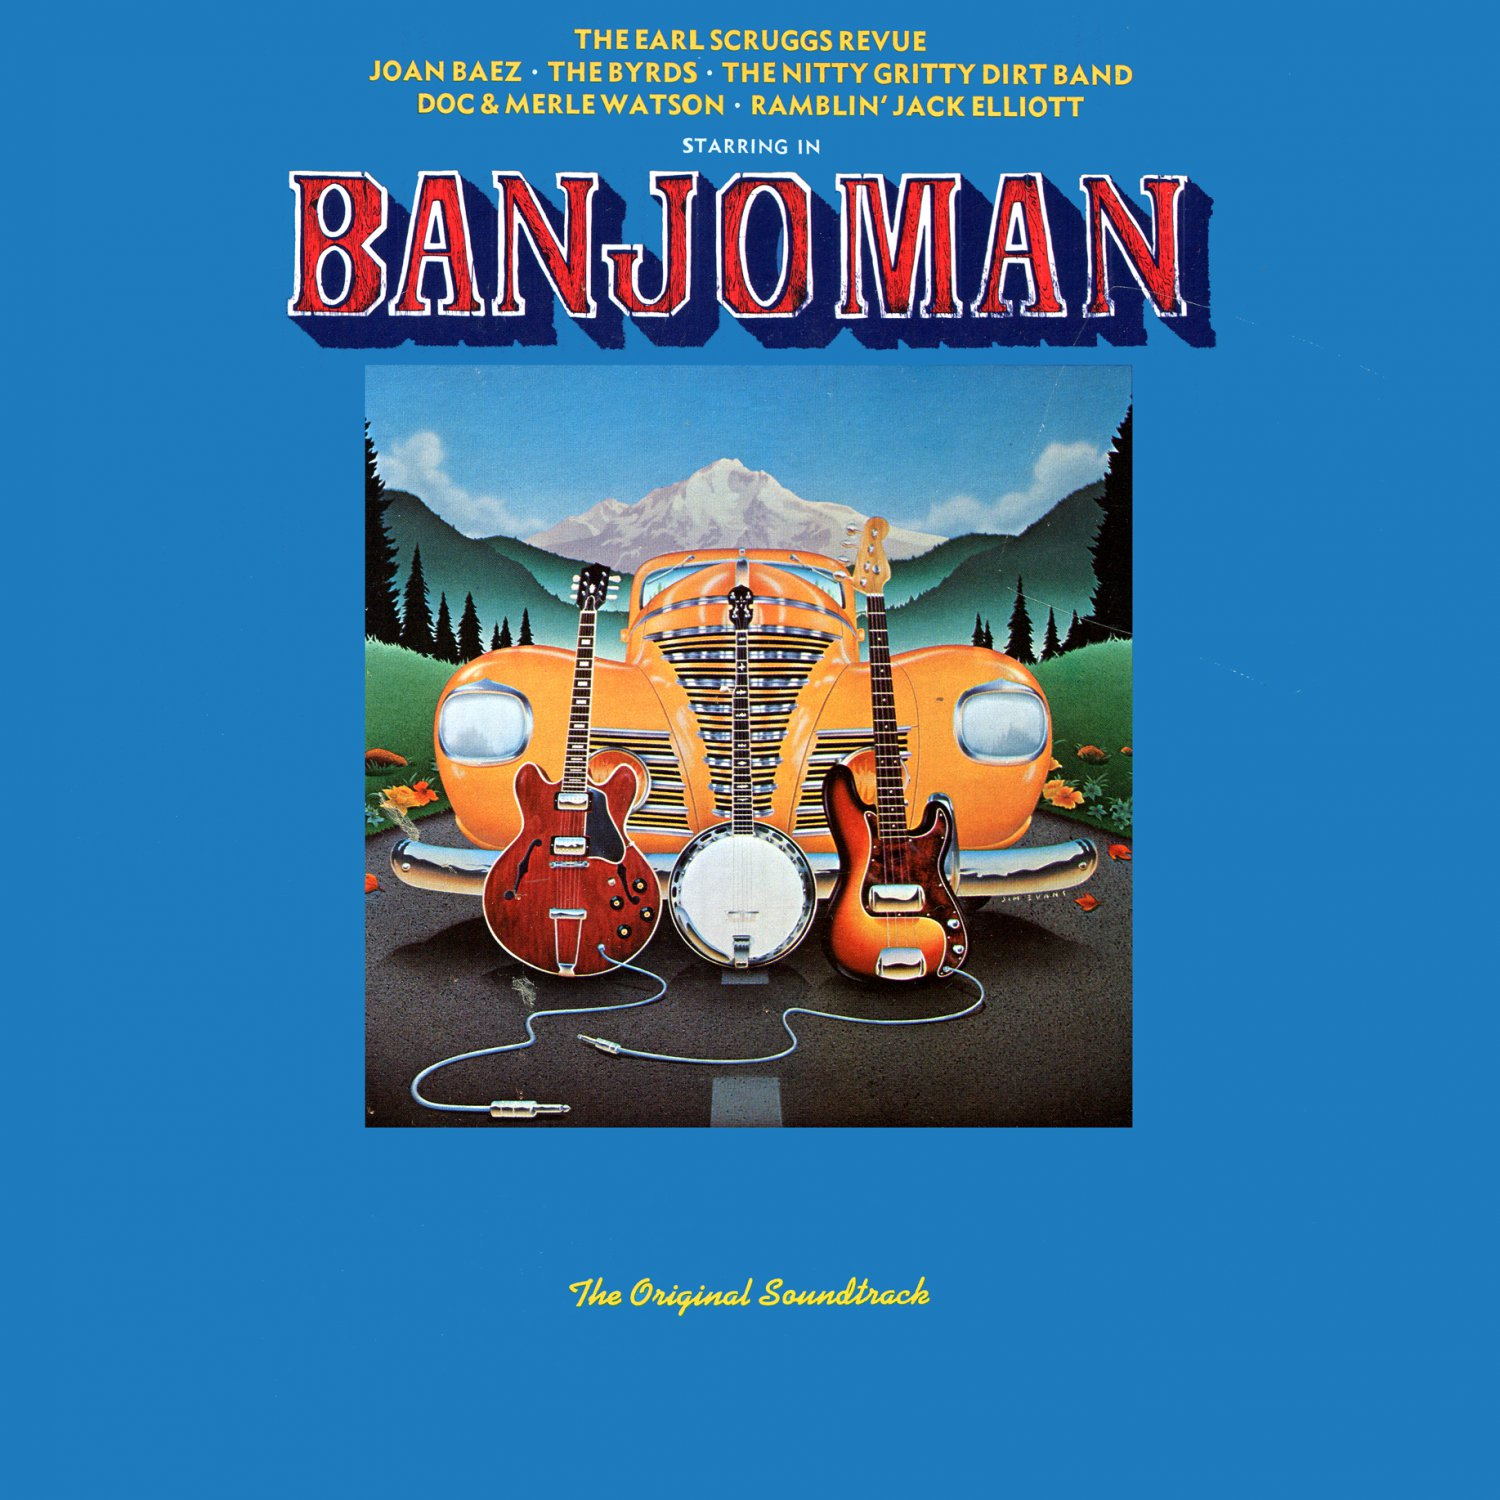 Banjoman - Original Soundtrack, The Earl Scruggs Revue OST LP/CD Banjo Man